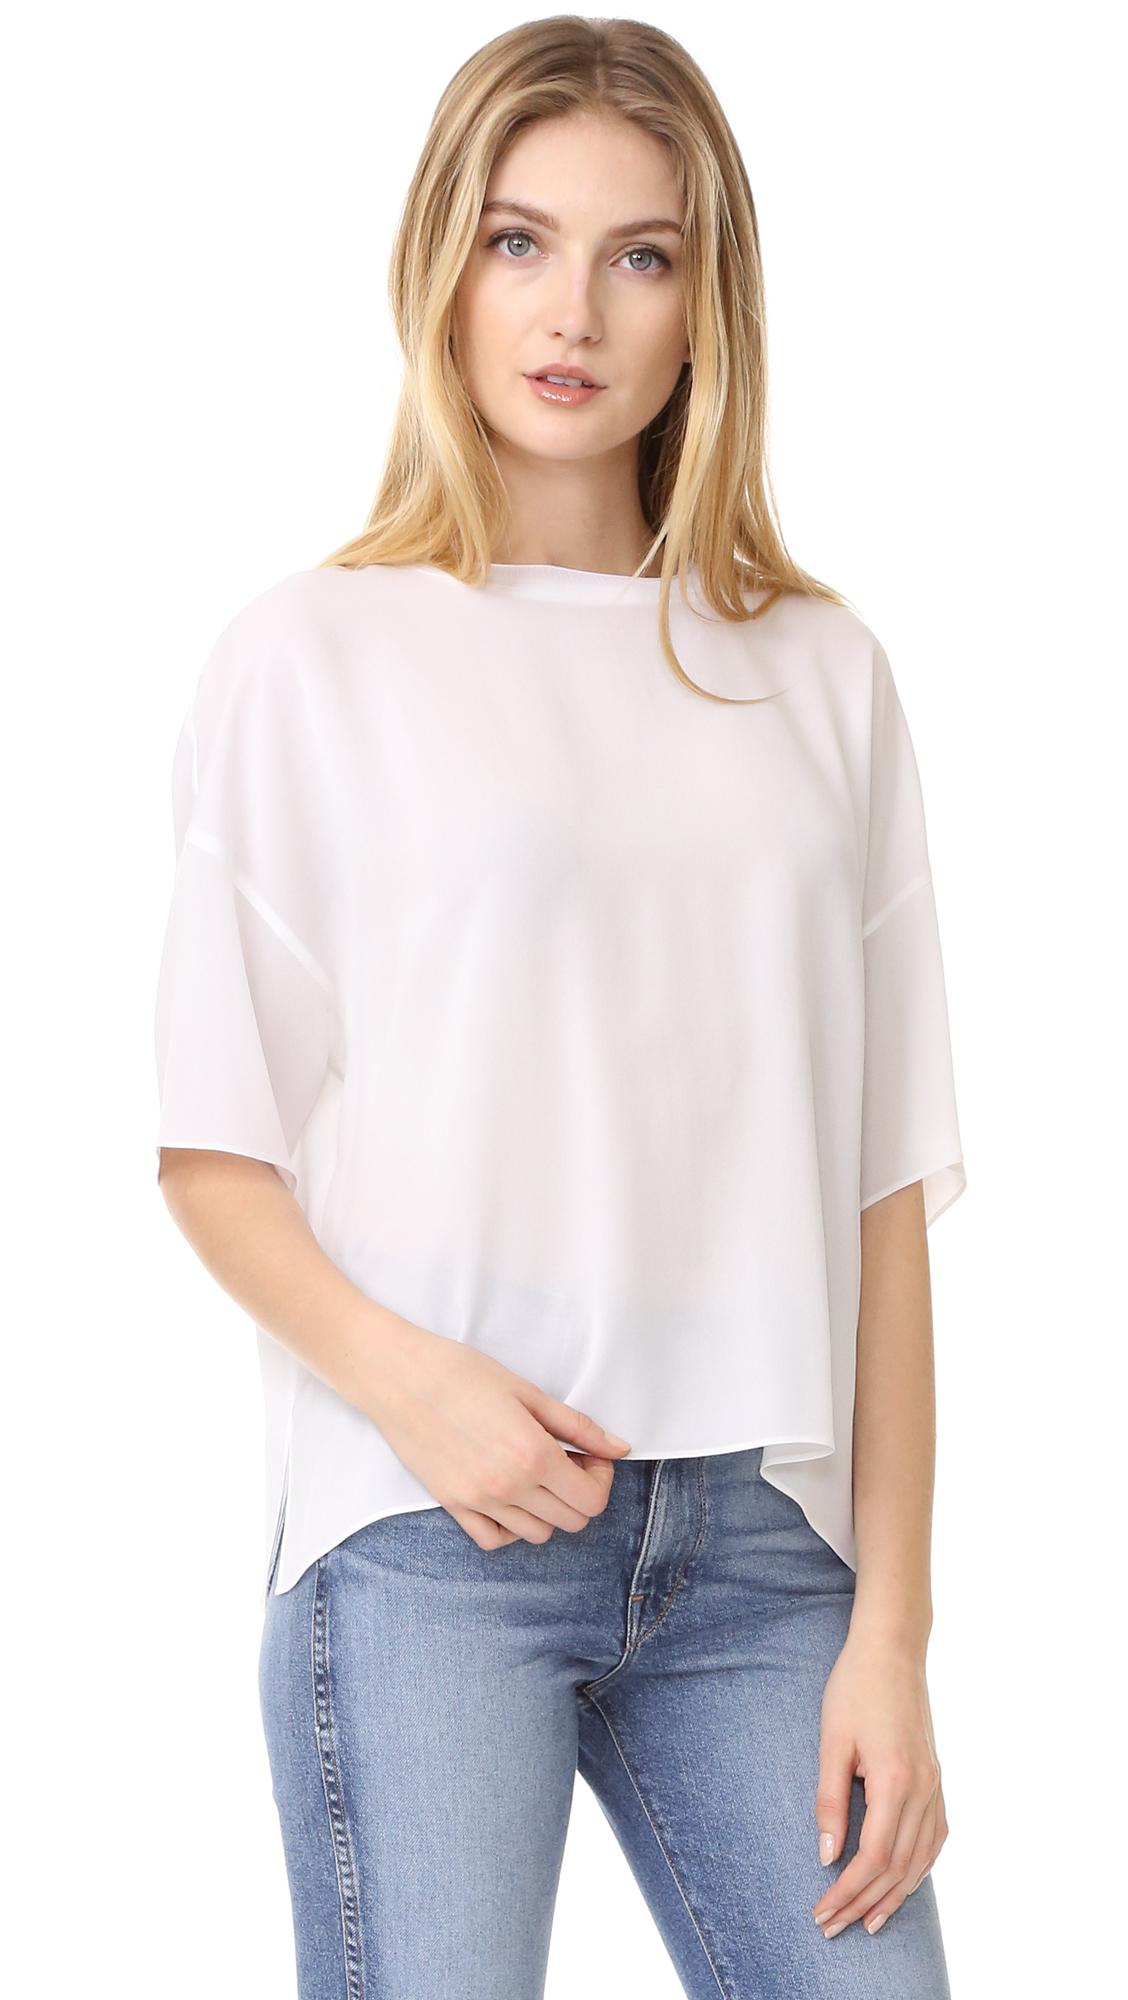 Vince rib neck silk tee in white lyst for Vince tee shirts sale